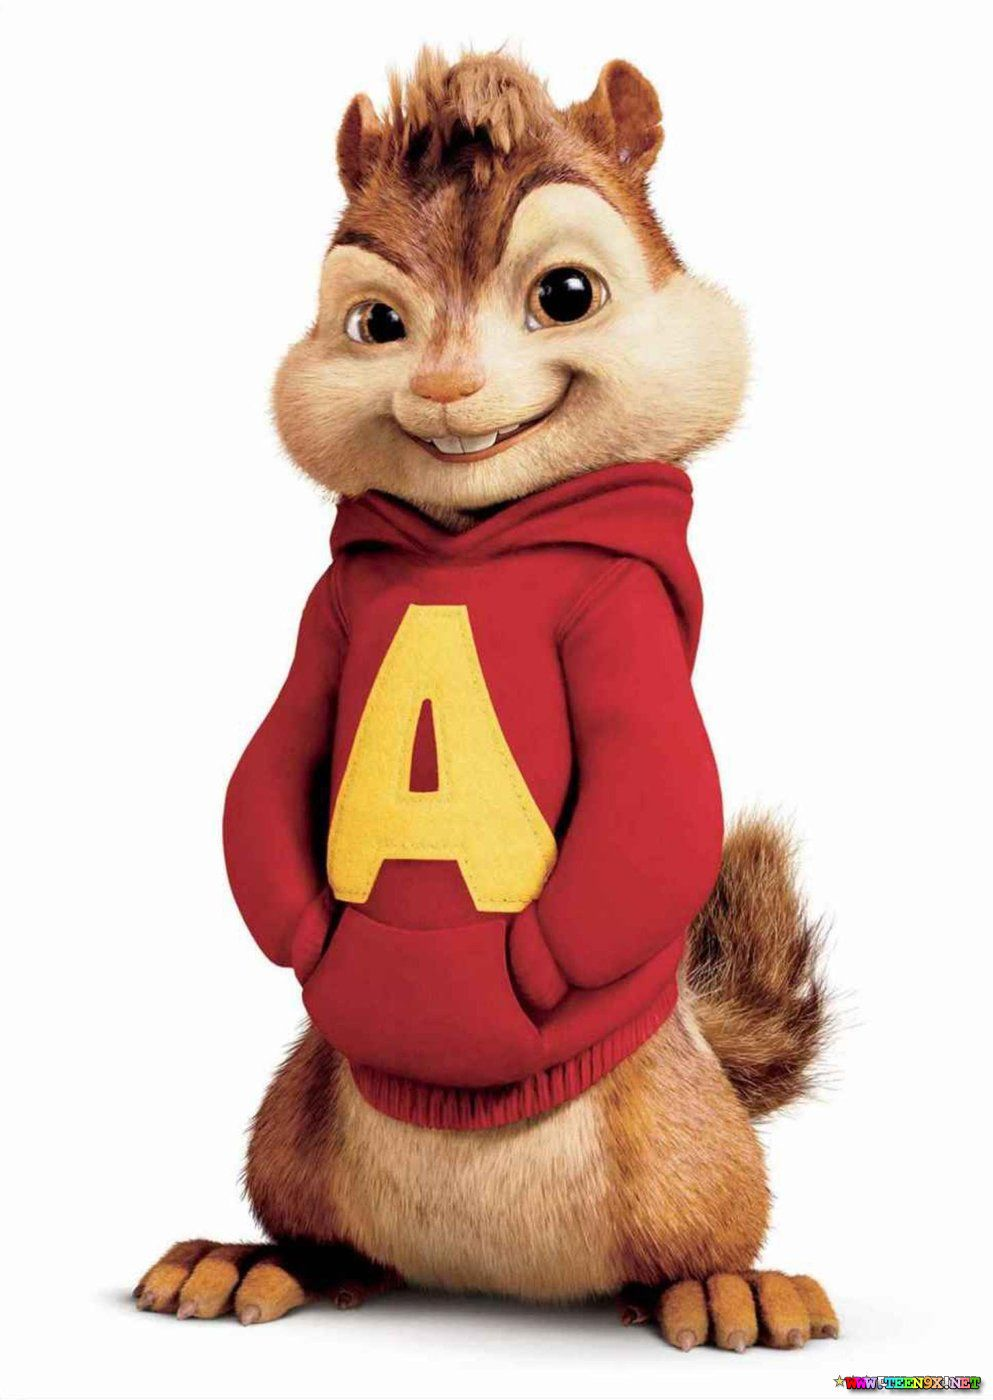 HQ Alvin And The Chipmunks Wallpapers | File 118.38Kb